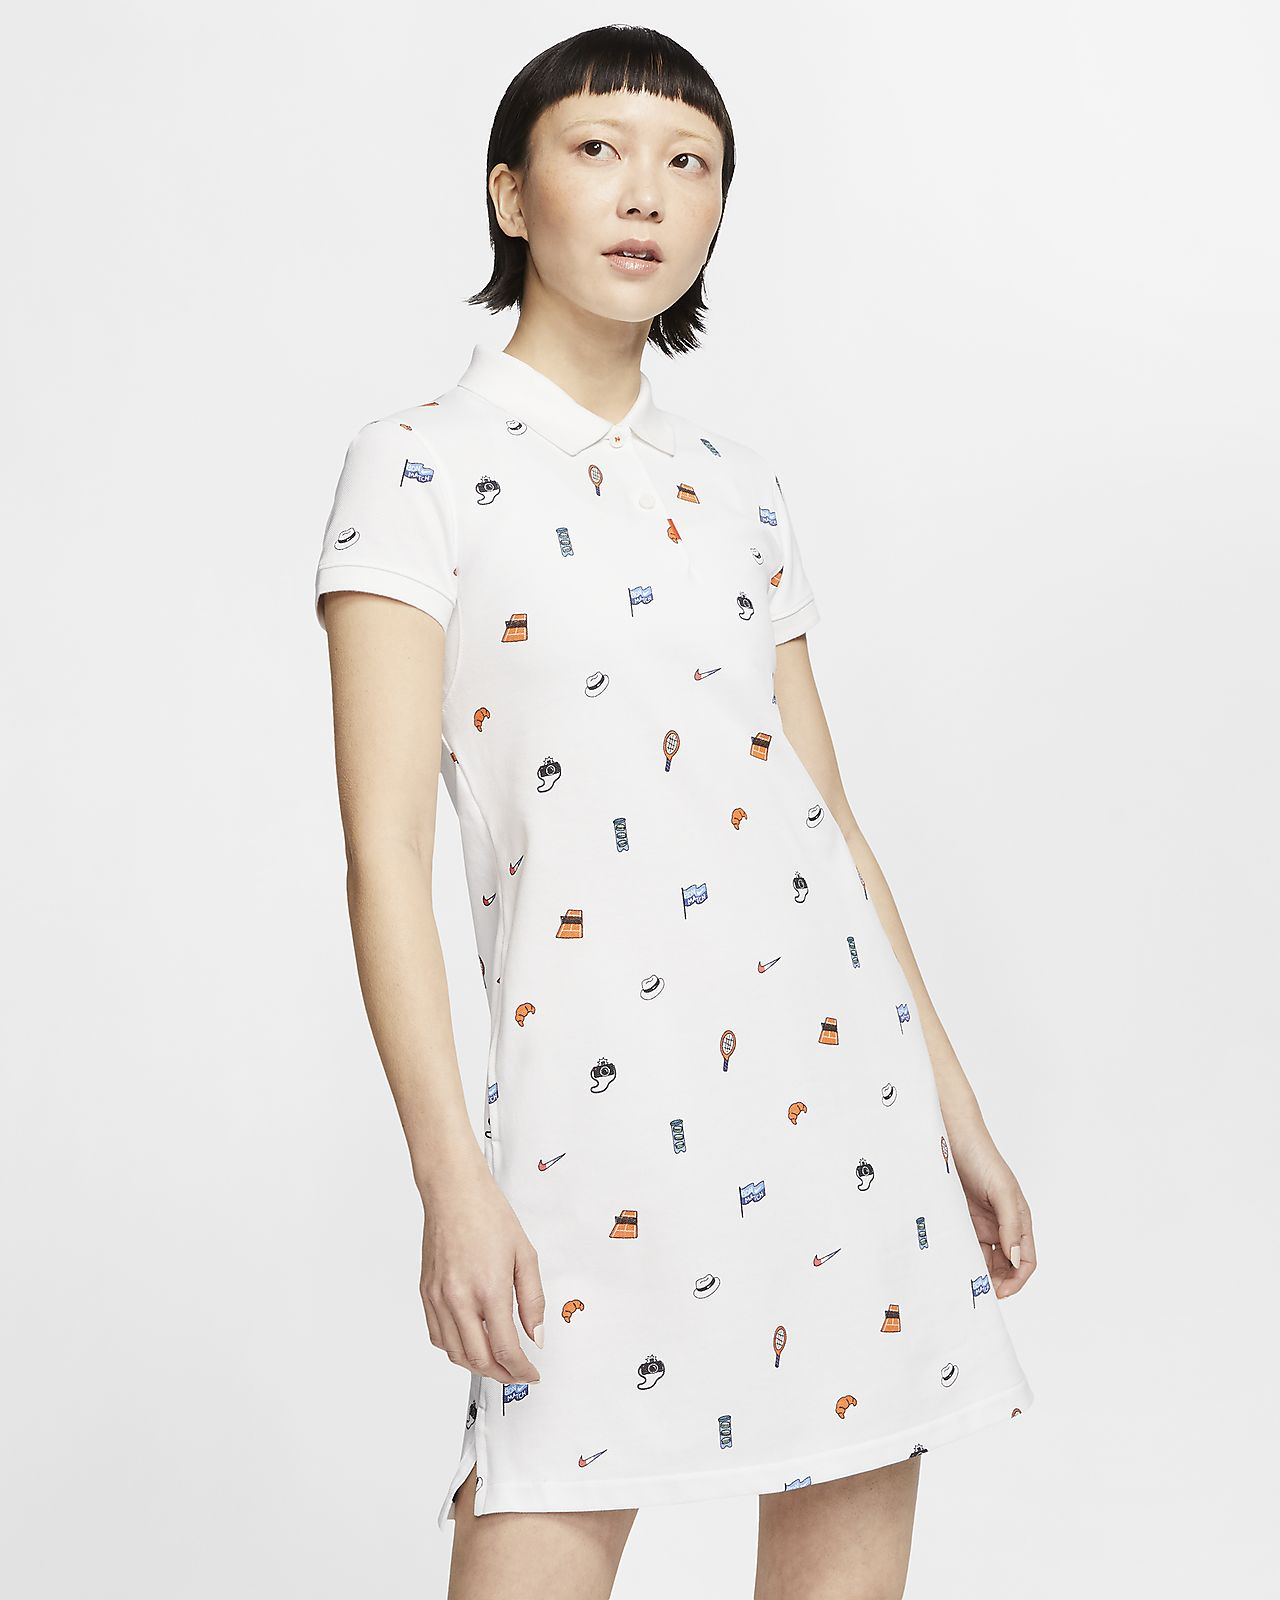 The Nike Polo Women's Printed Dress